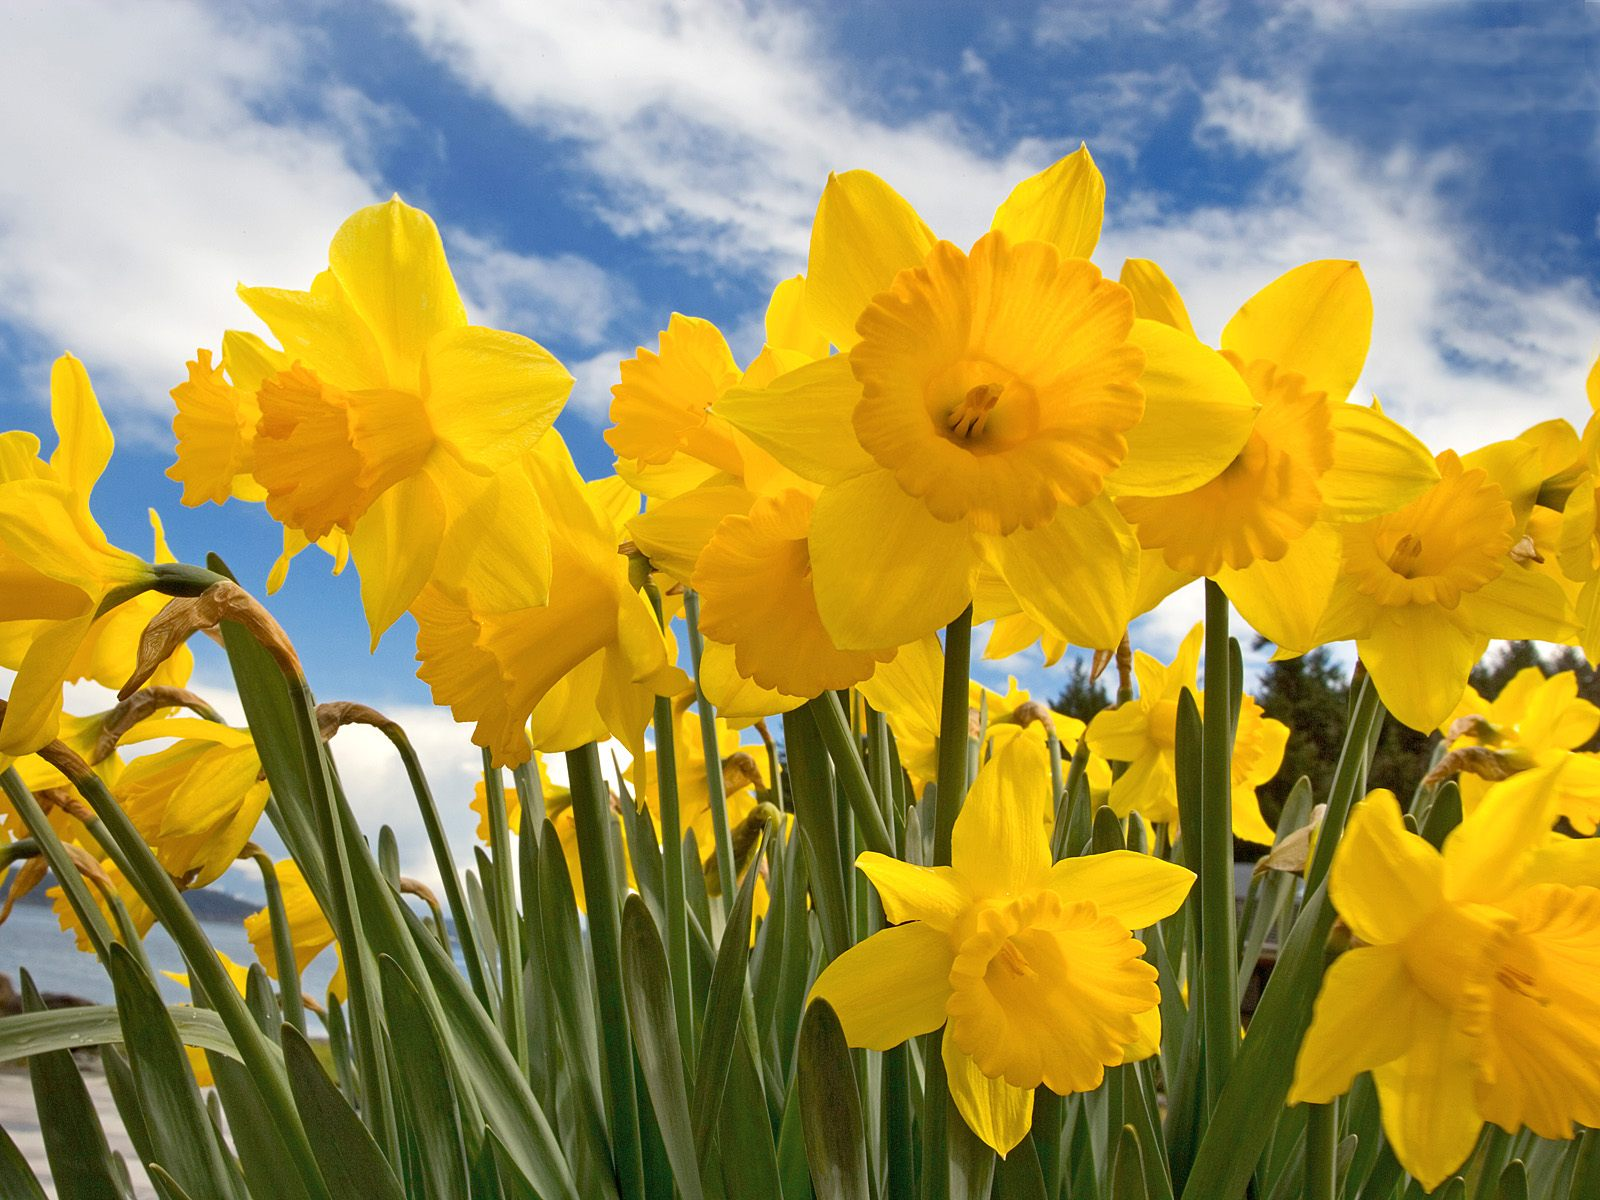 Wallpapers Of The Day: Daffodil | 1600x1200 px Daffodil Pictures